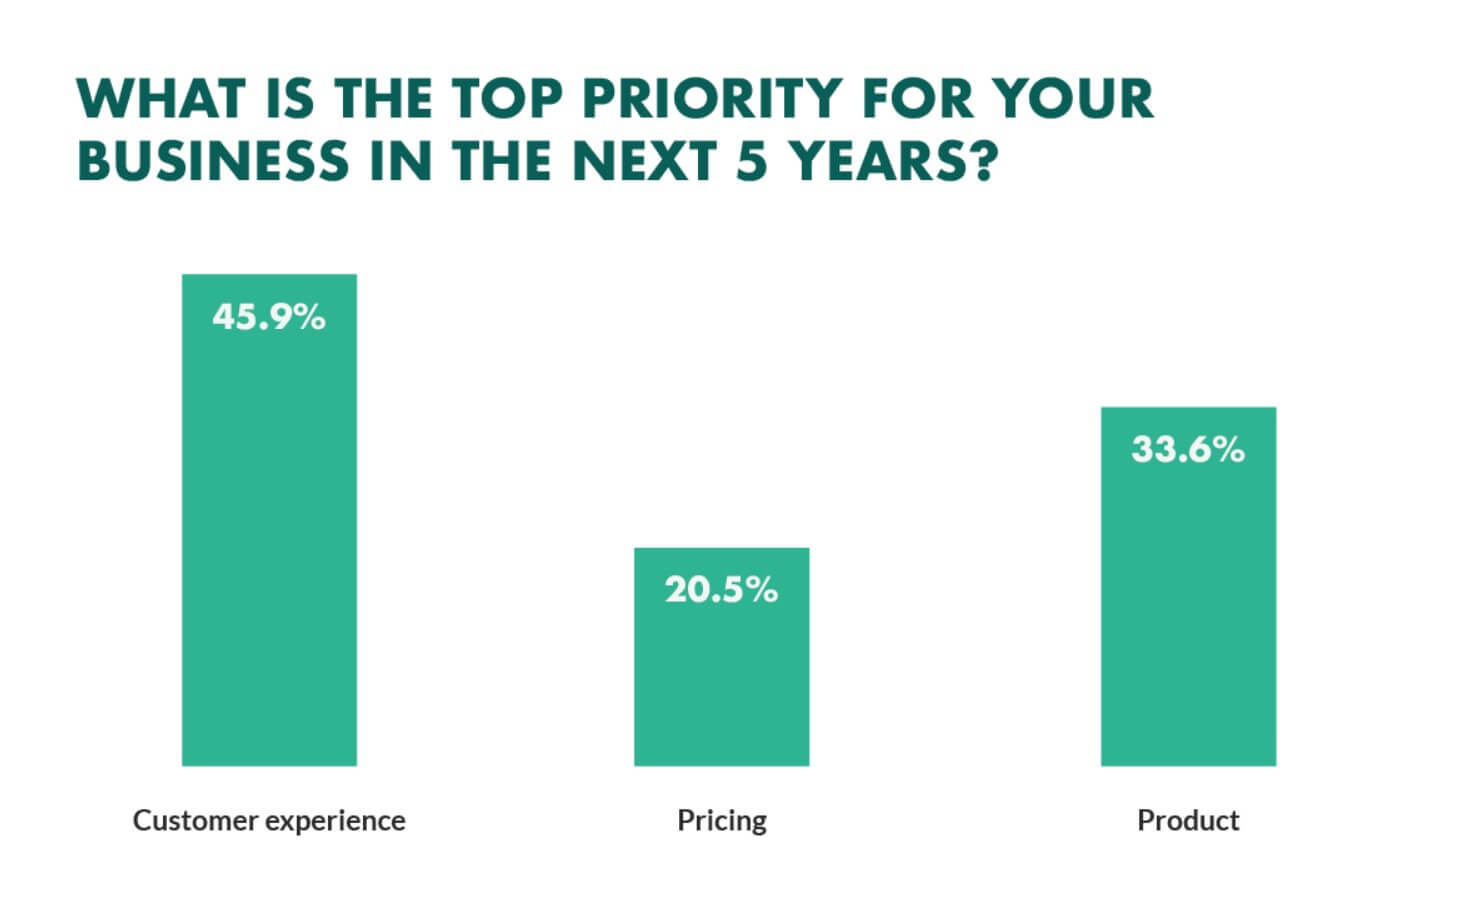 Customer experience has become the top priority for businesses in 2022 and total experience does influence customer experience. Total experience is within b2b content marketin trends in 2022.